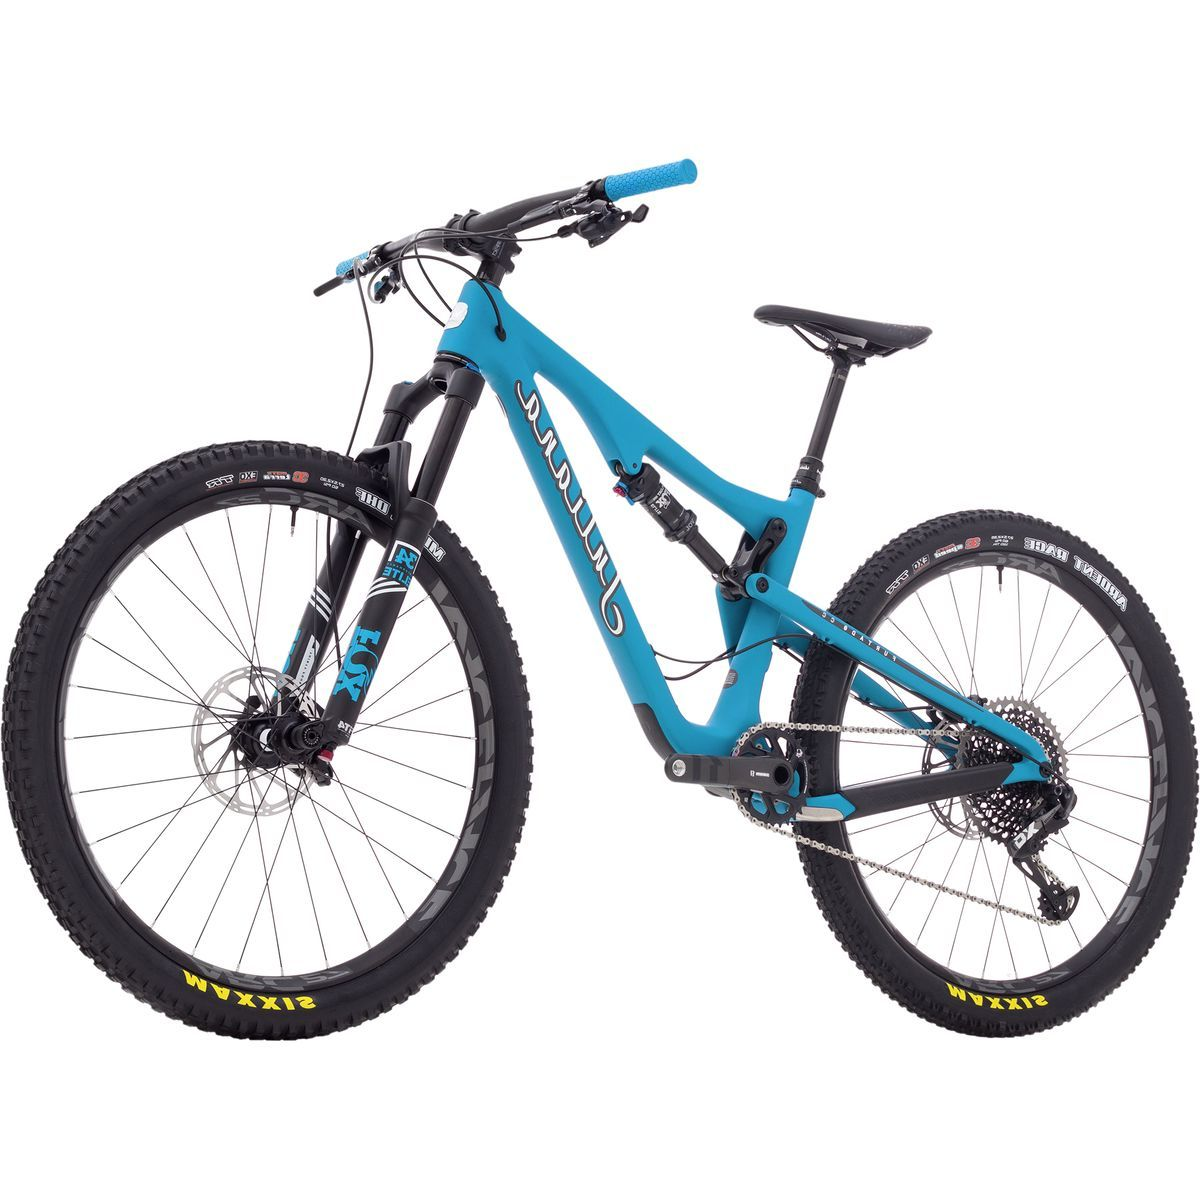 Juliana Furtado 2.1 Carbon CC X01 Eagle Mountain Bike - 2018 - Women's